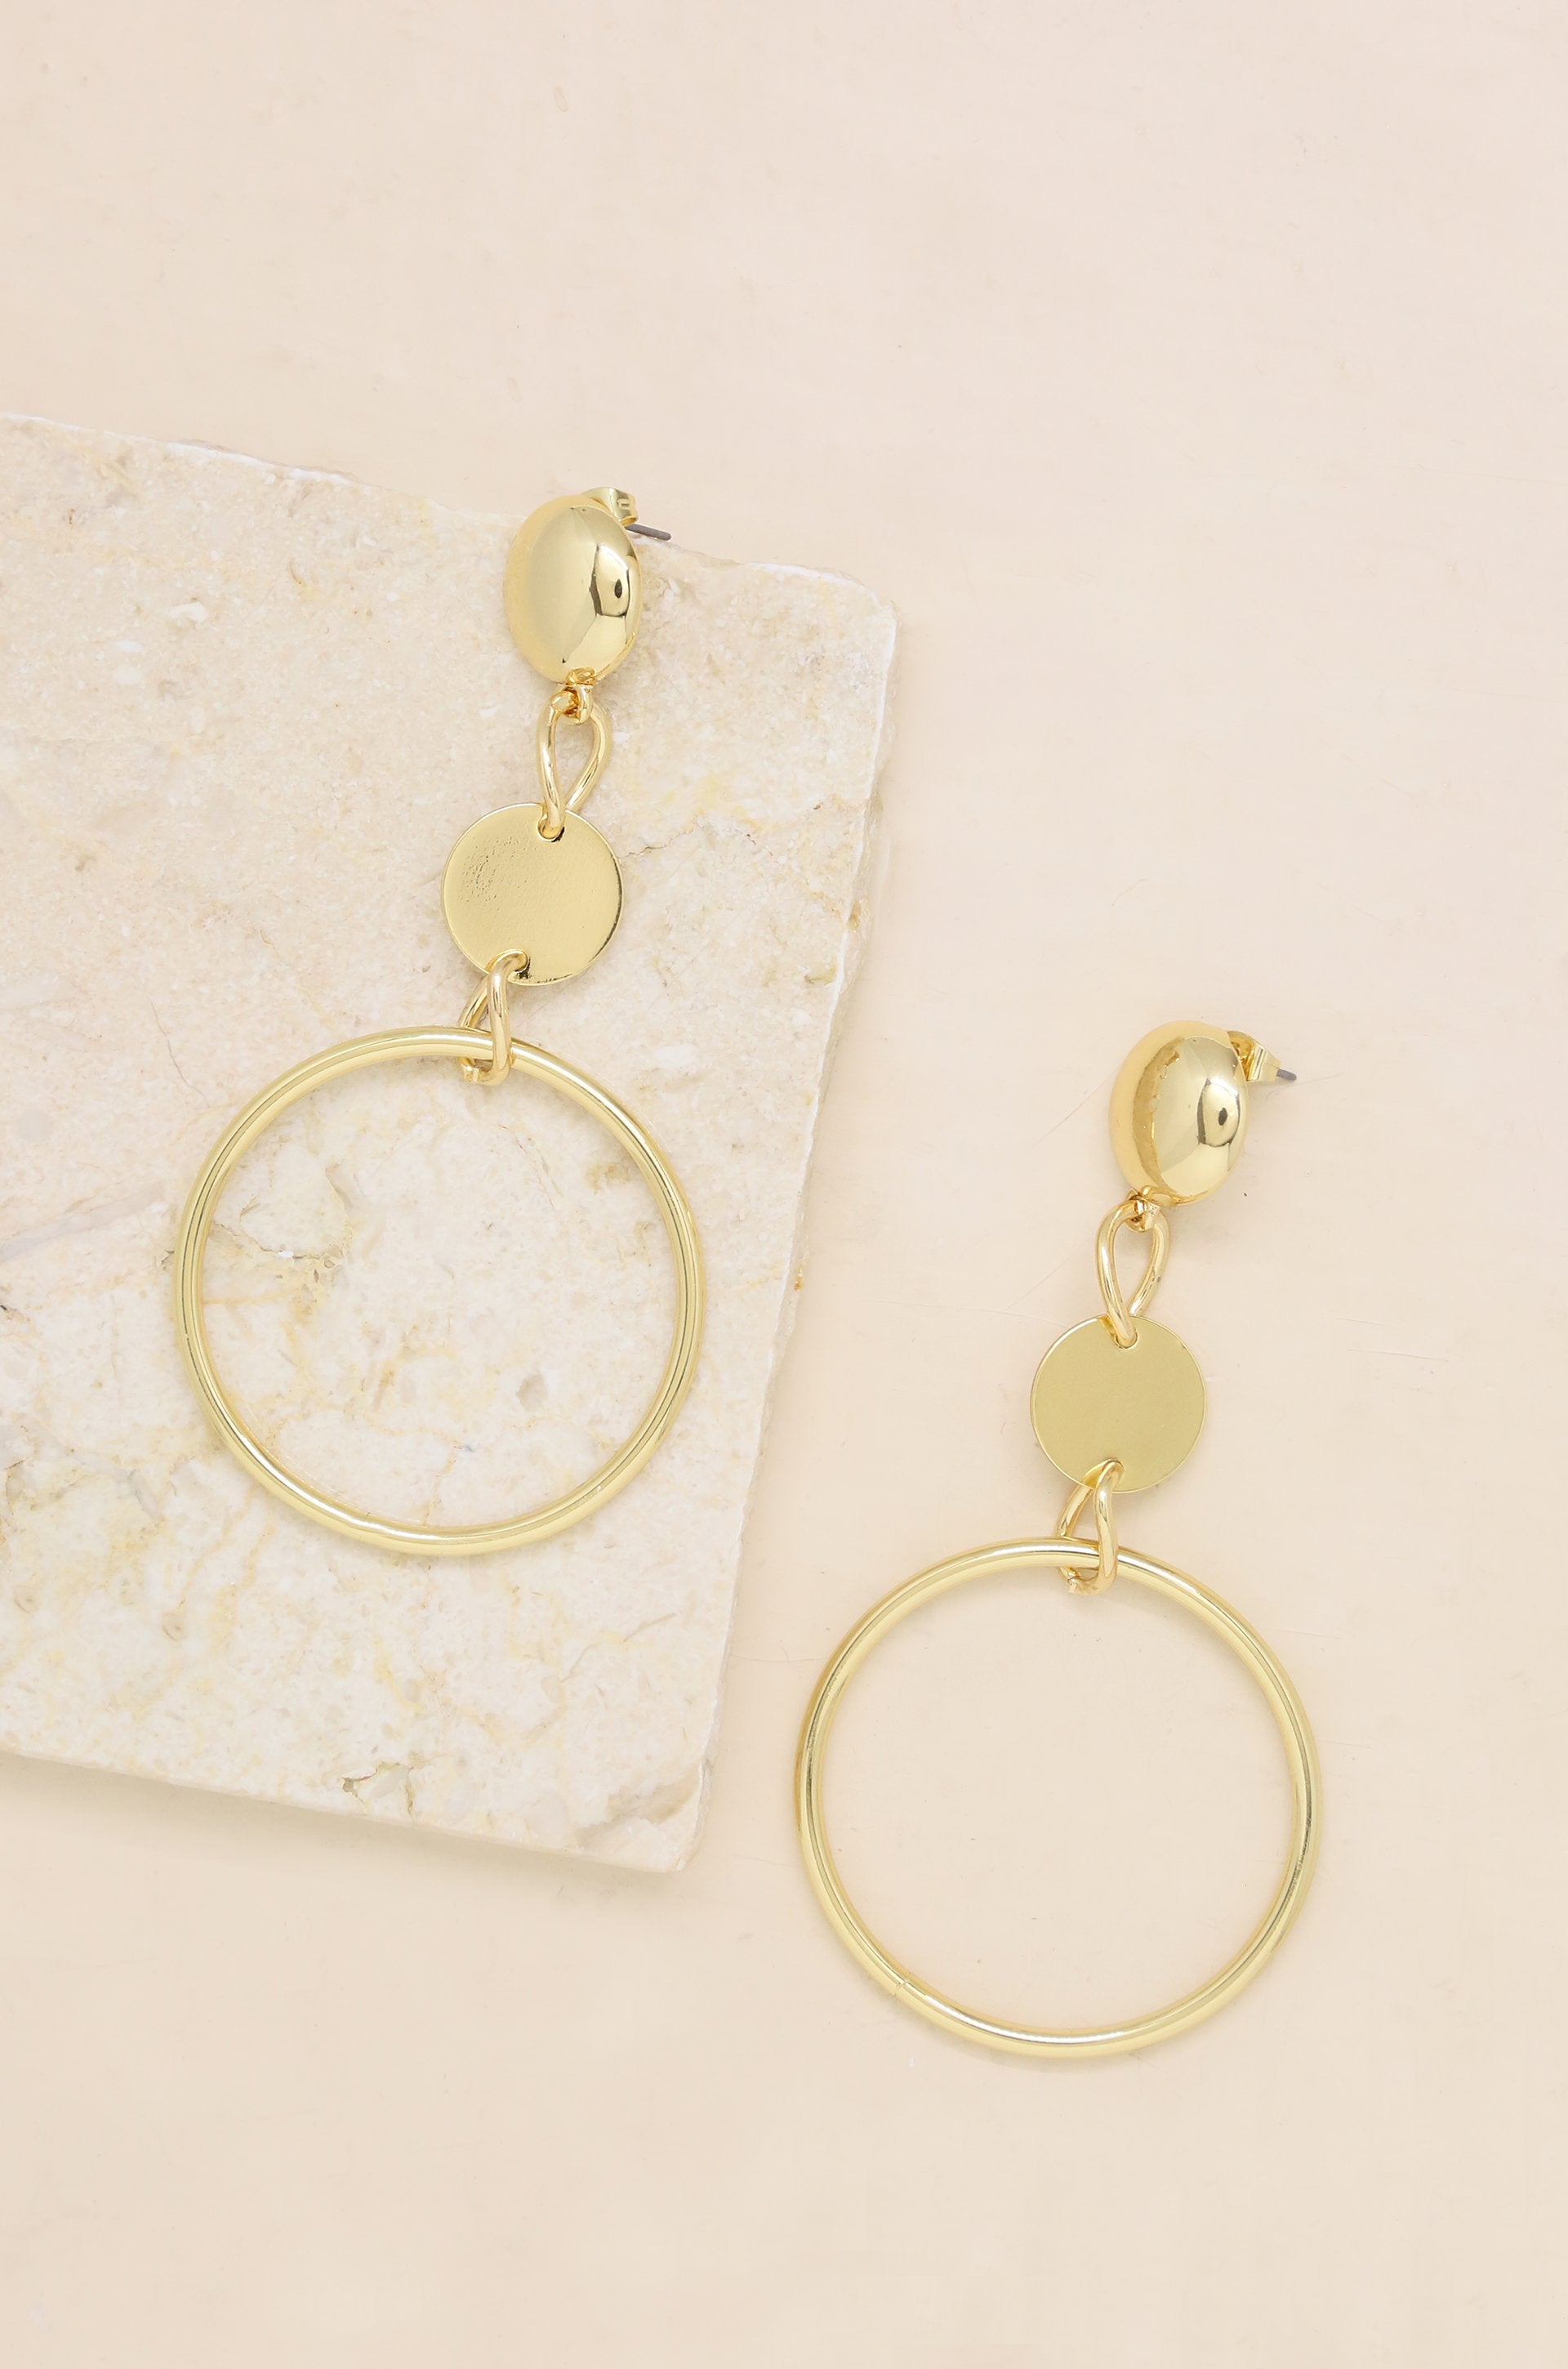 Gold Plated Dangle Earrings - Vanessa Stylez Boutique